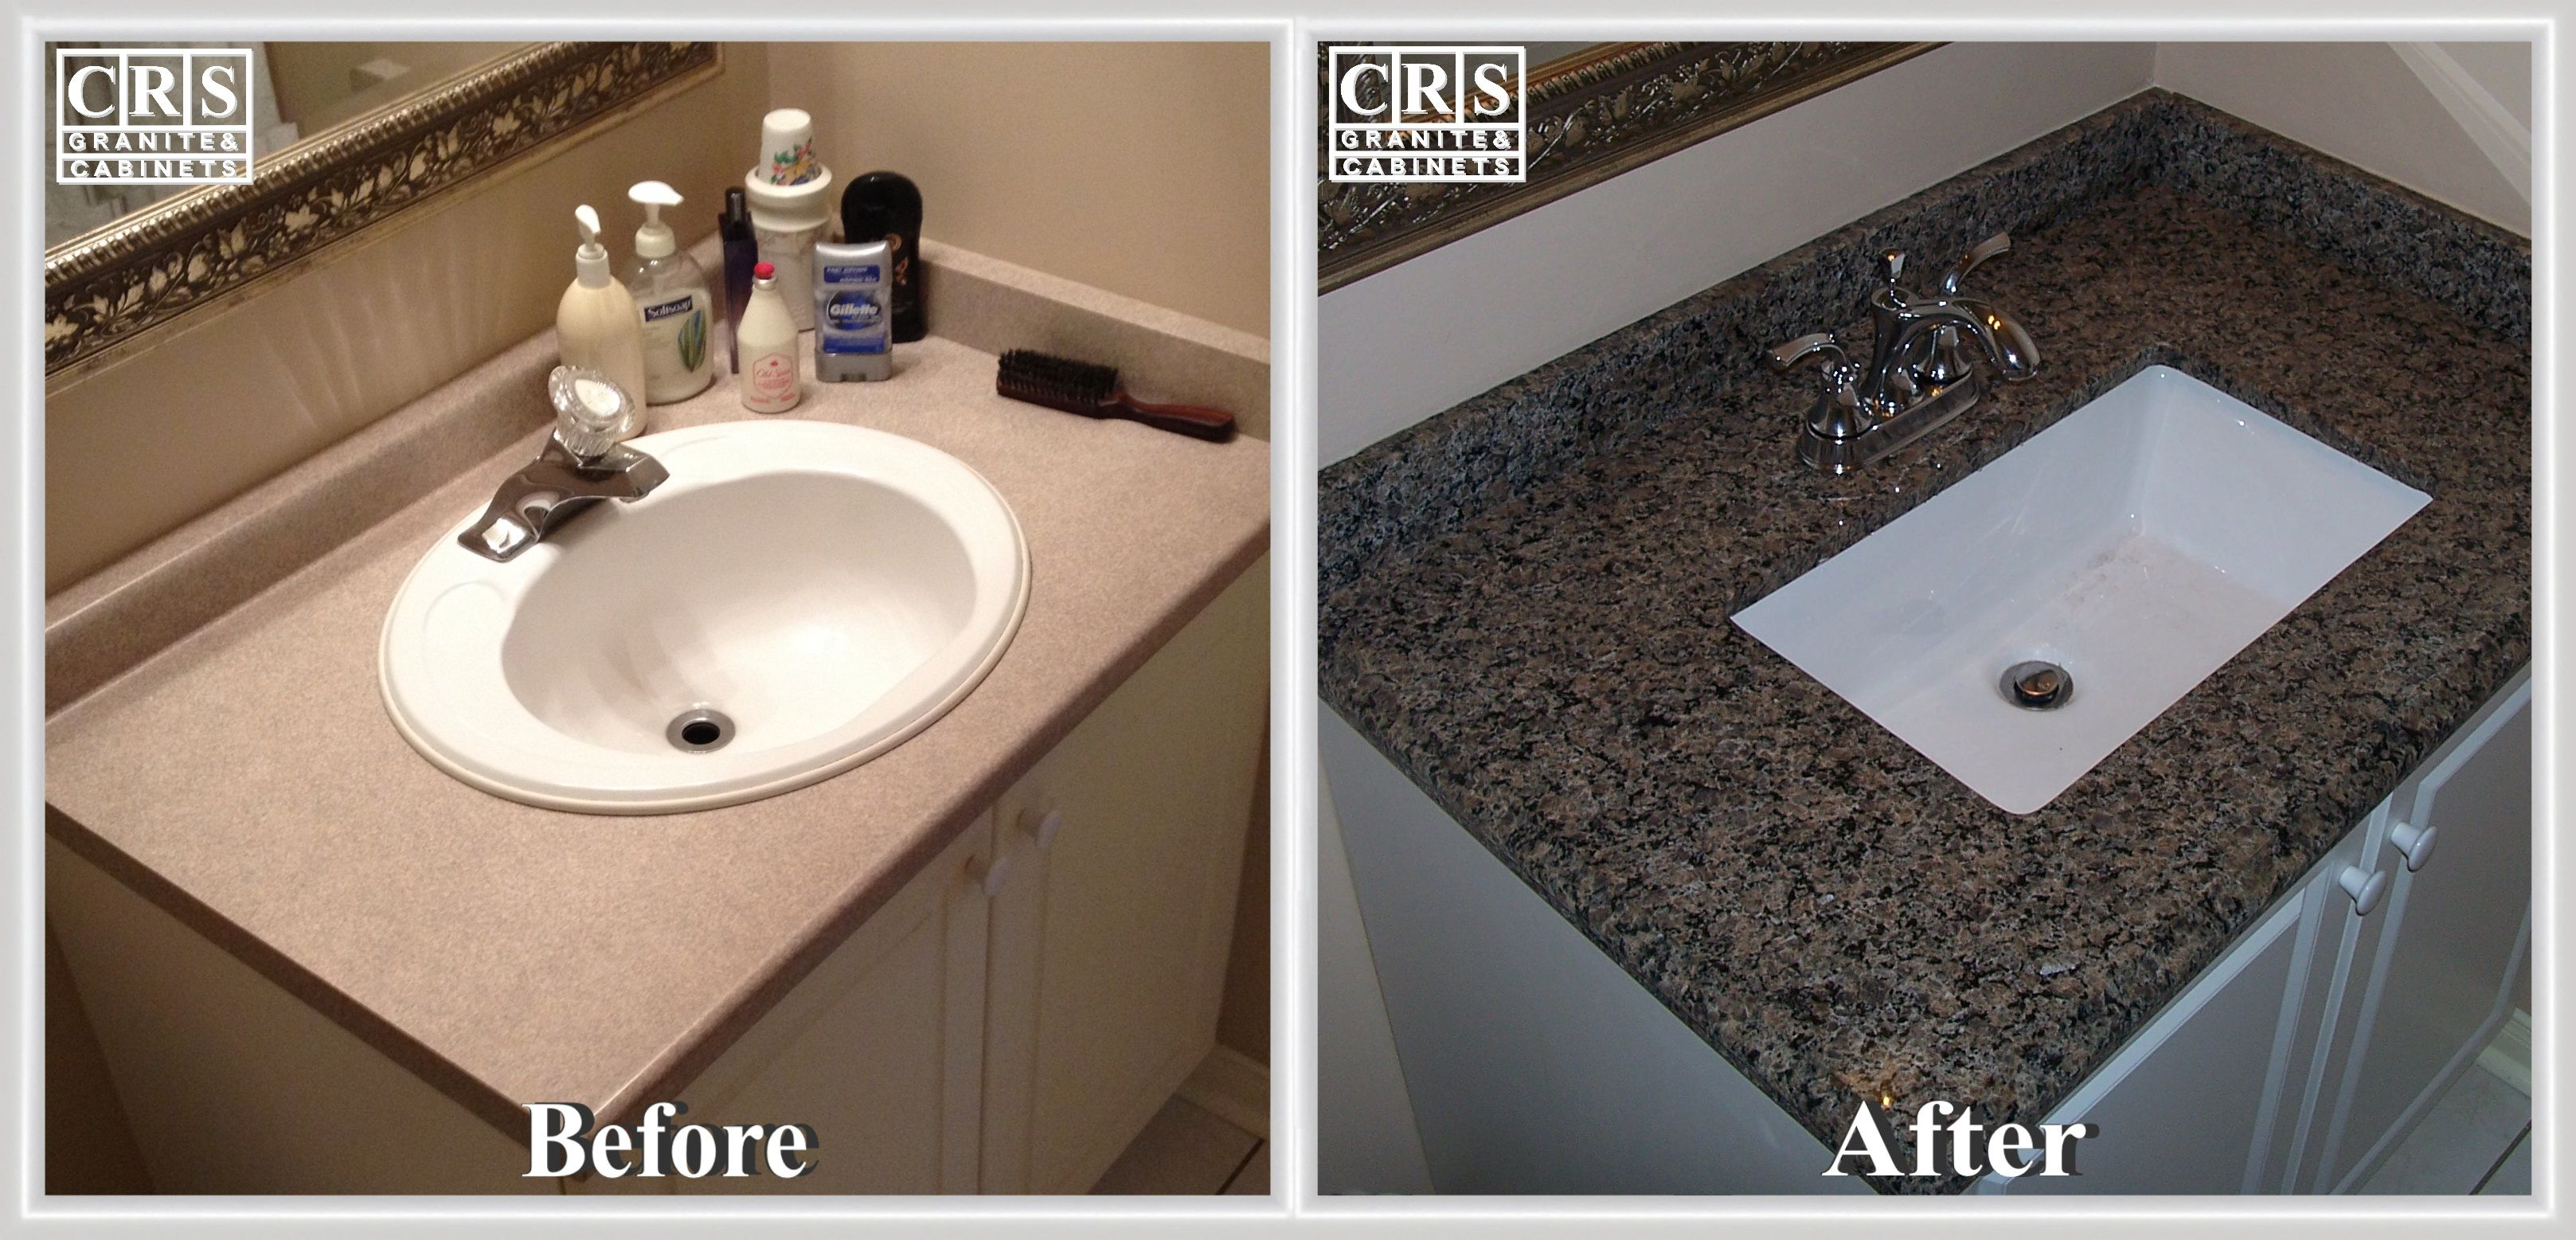 Here We See A Simple Project Producing Major Improvement This Is A Bathroom Sink And Countertop Installation How To Install Countertops Caledonia Granite Sink